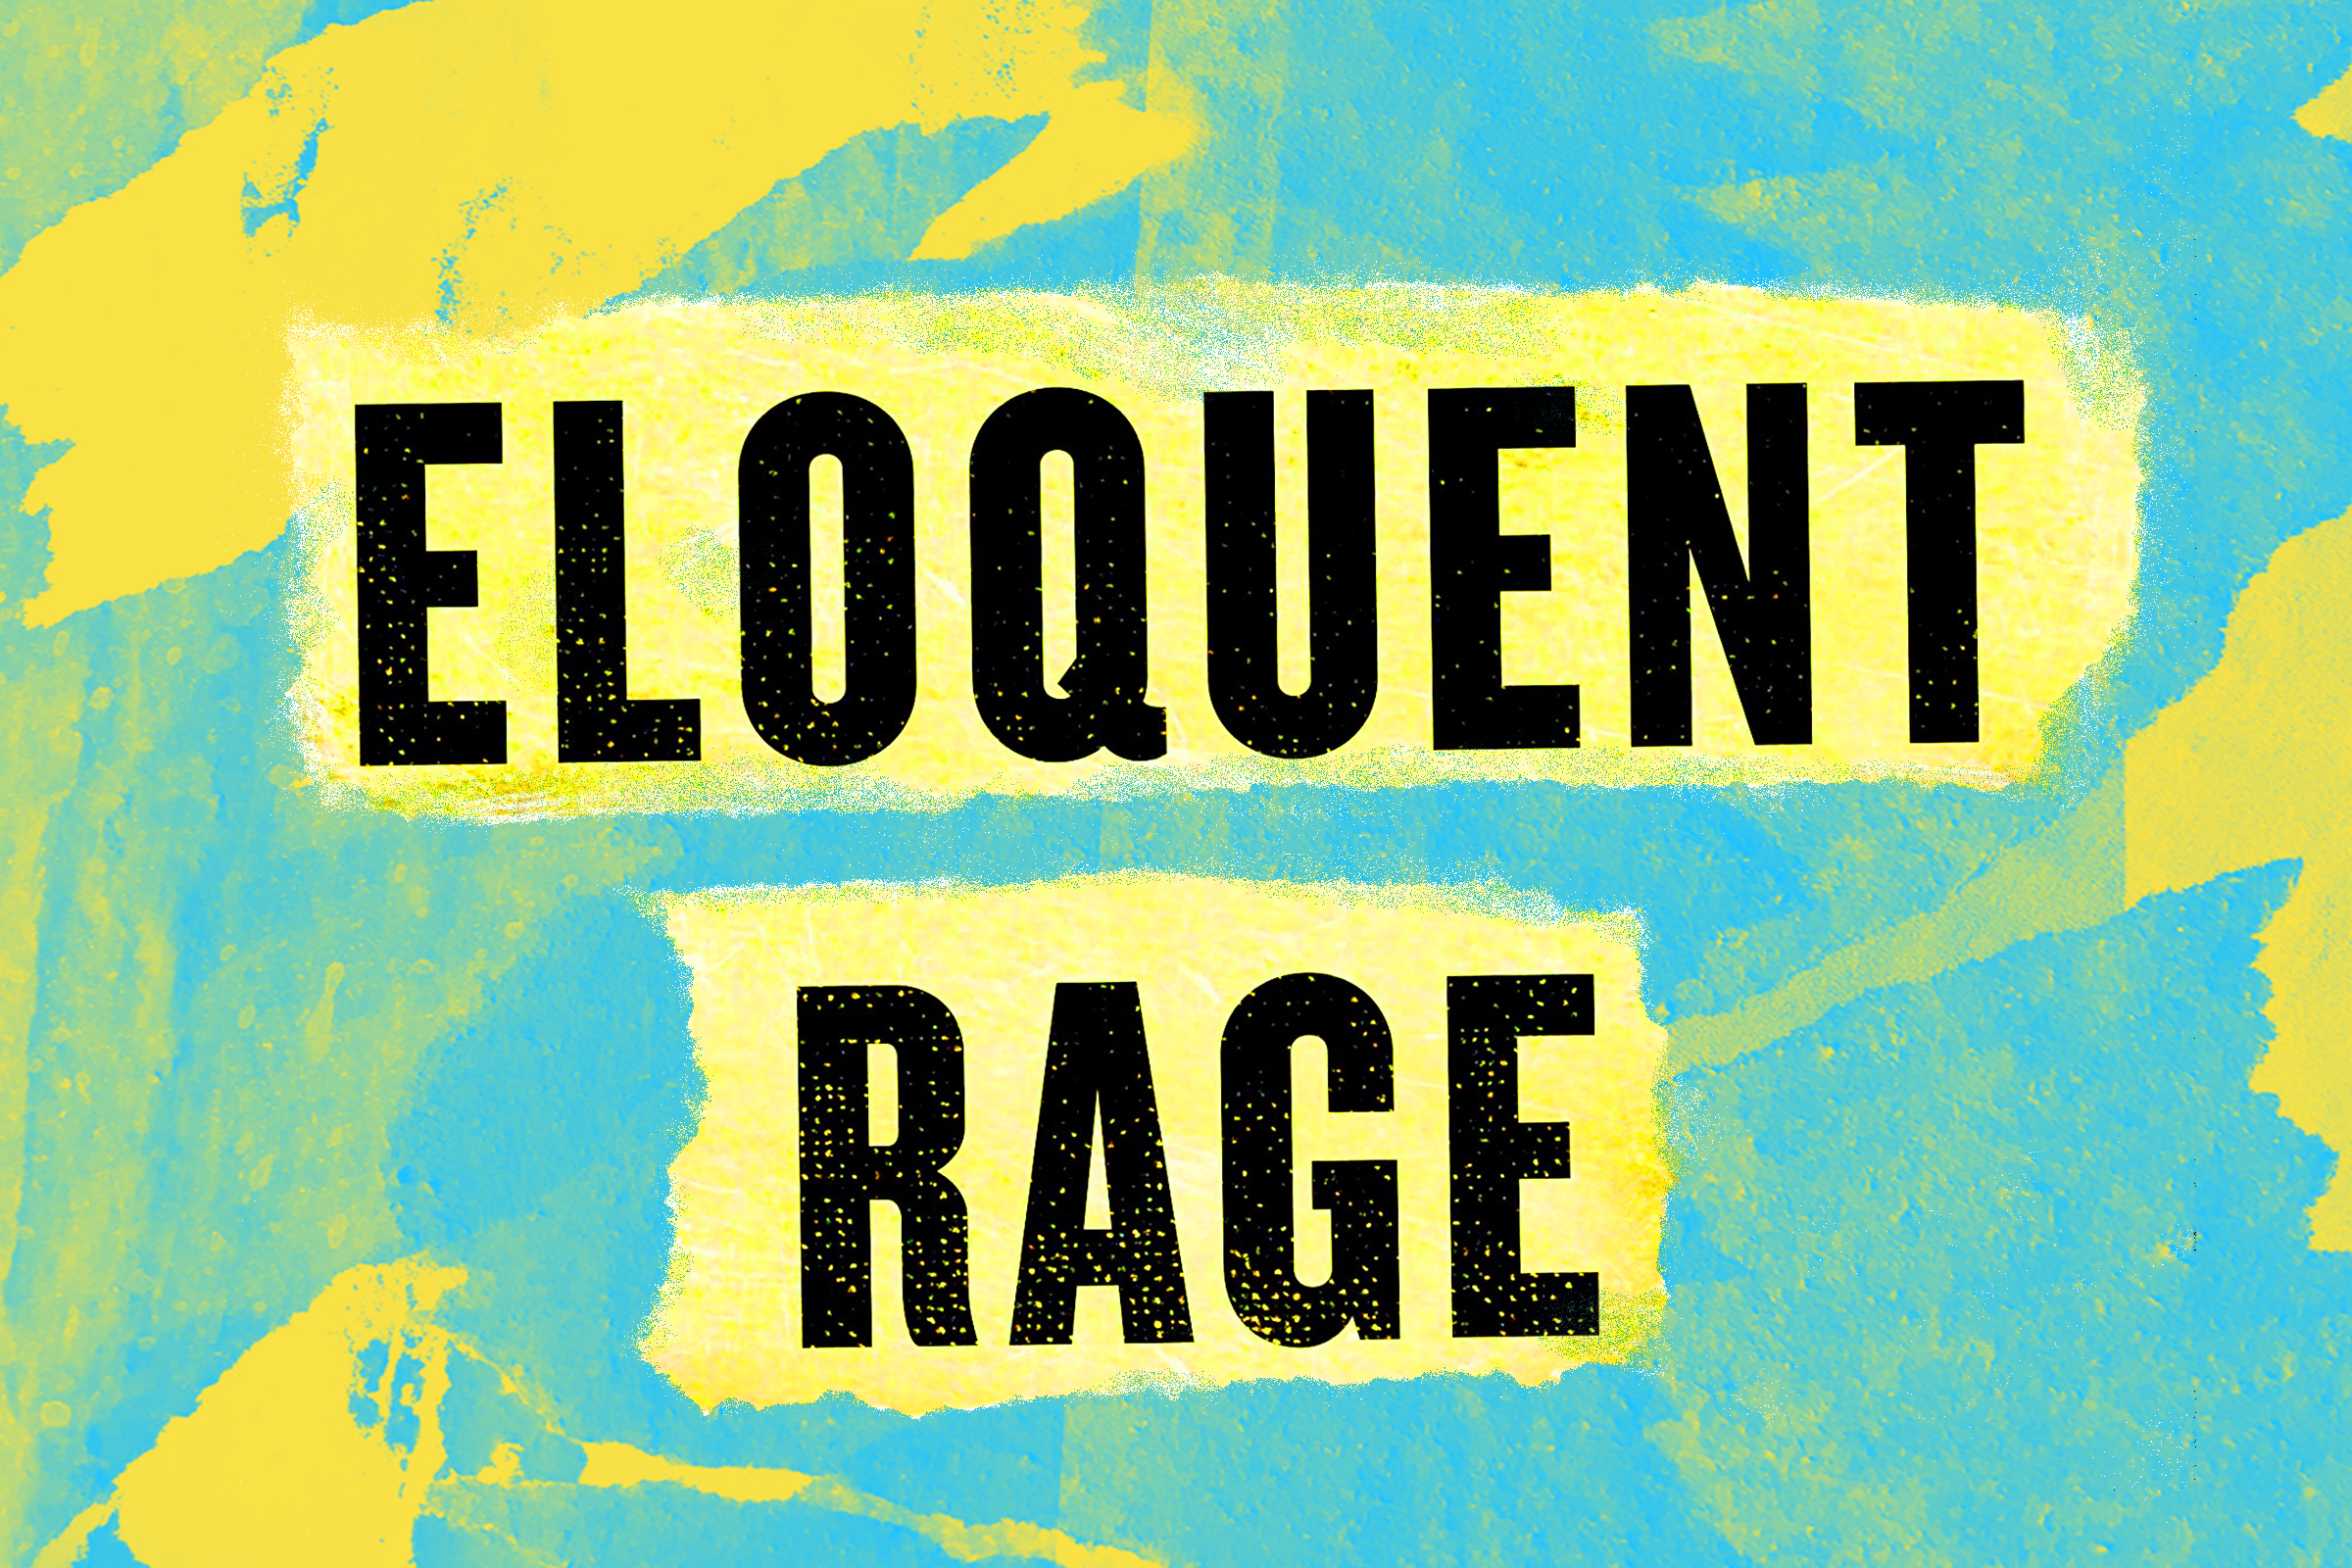 Eloquent Rage book cover title collaged on a blue and yellow textured background